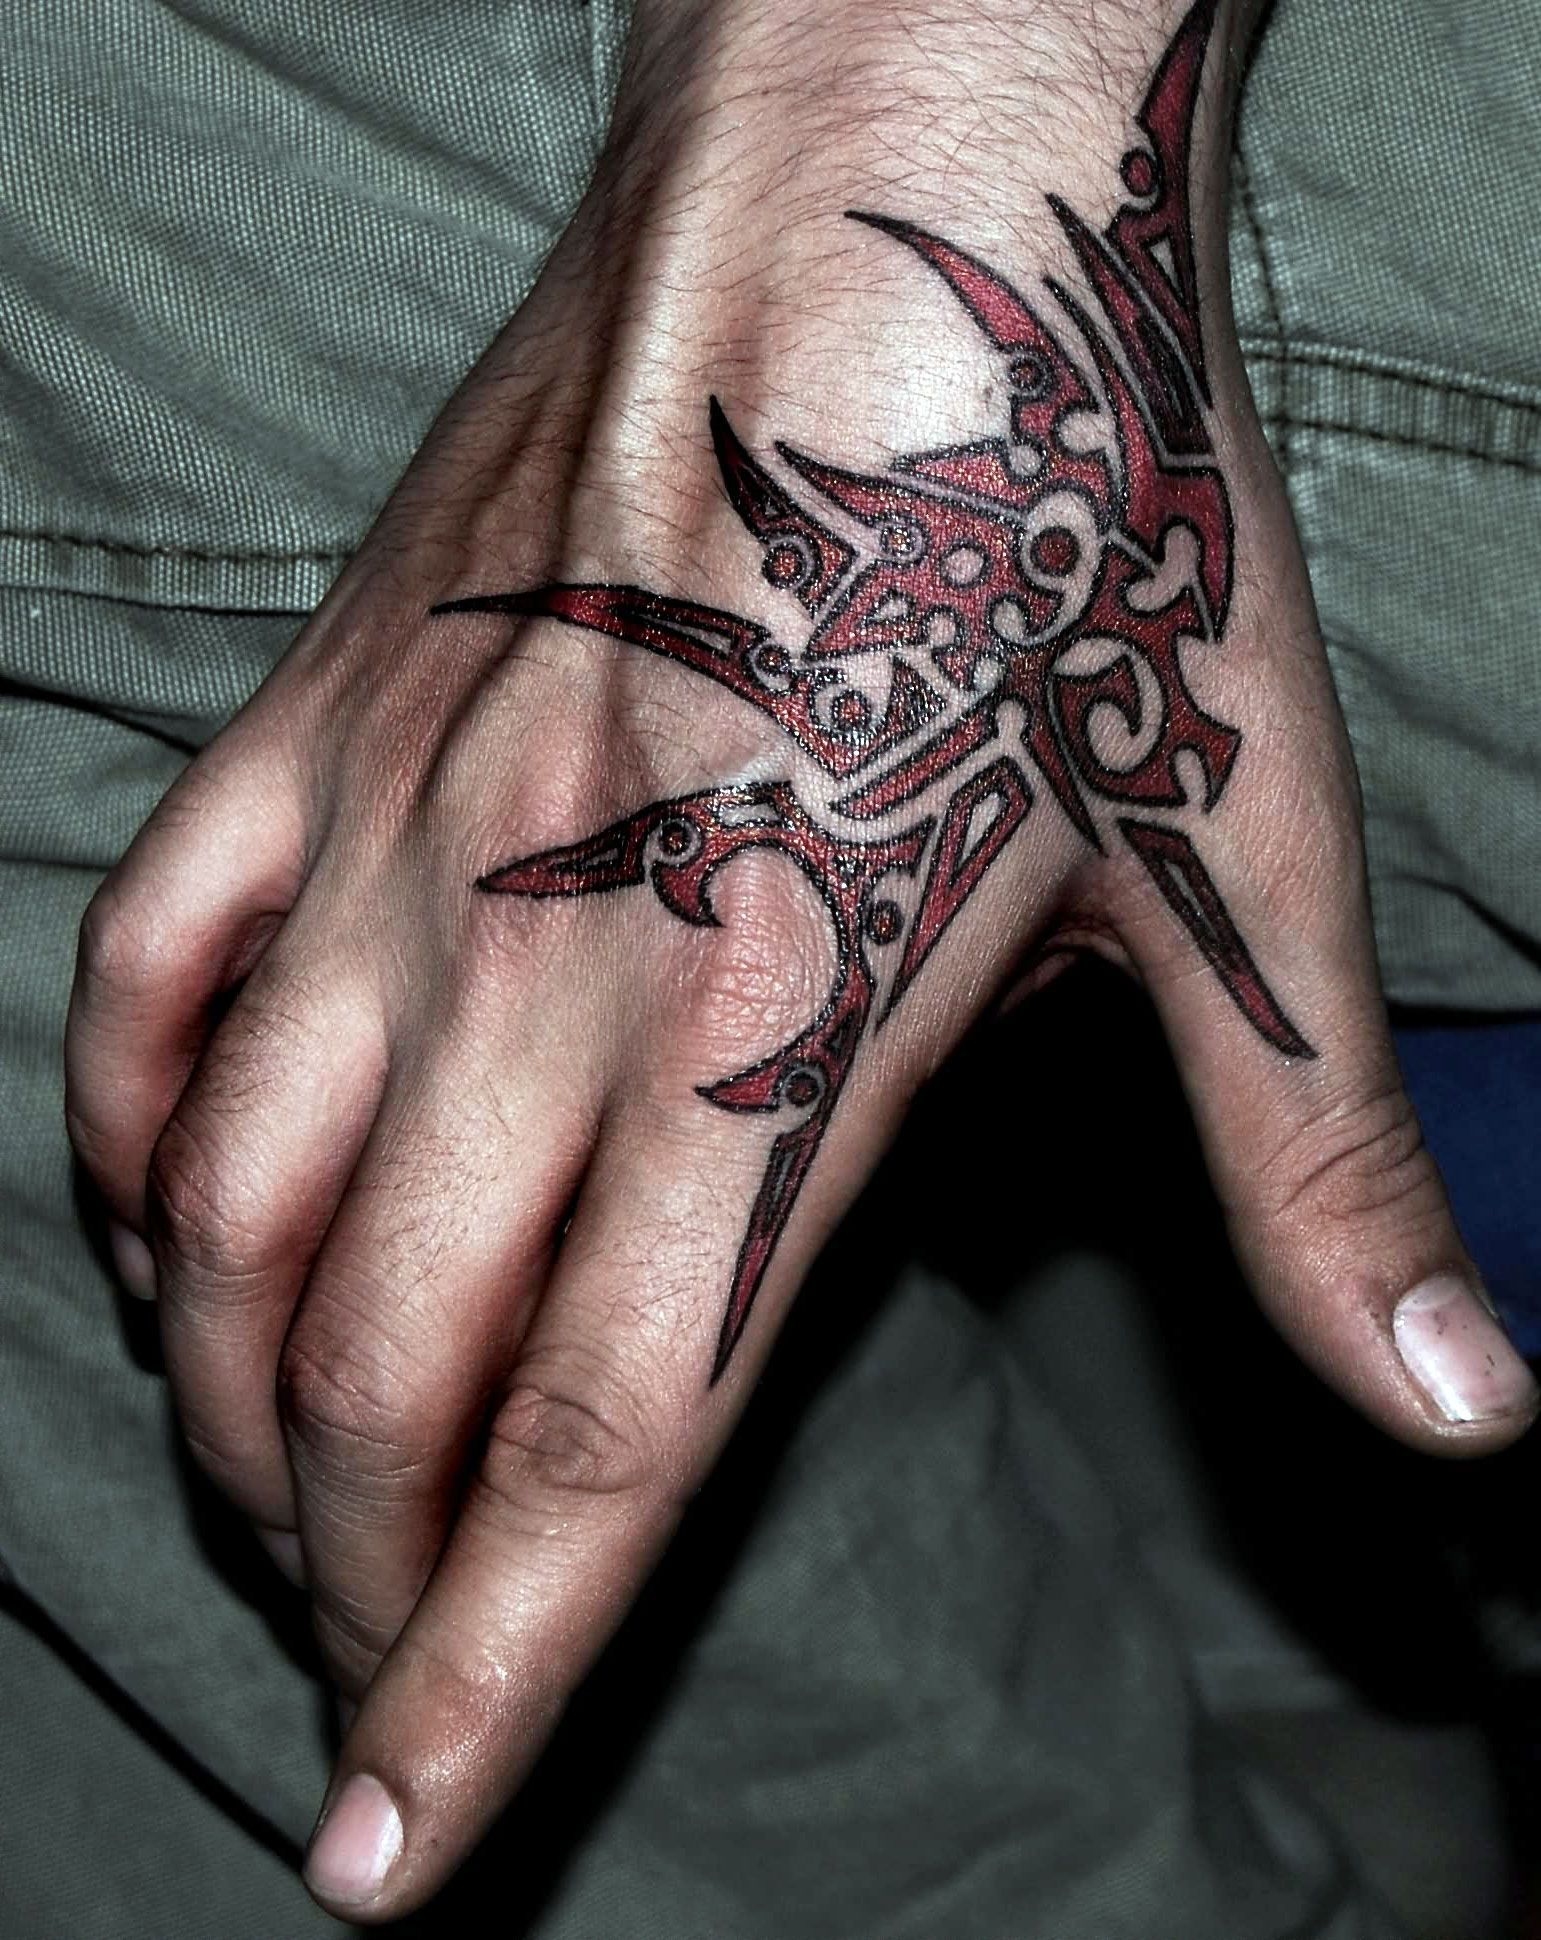 Tattoos For Men On Hand Google Search Hand Tattoos For Guys Tattoo Design For Hand Simple Tribal Tattoos